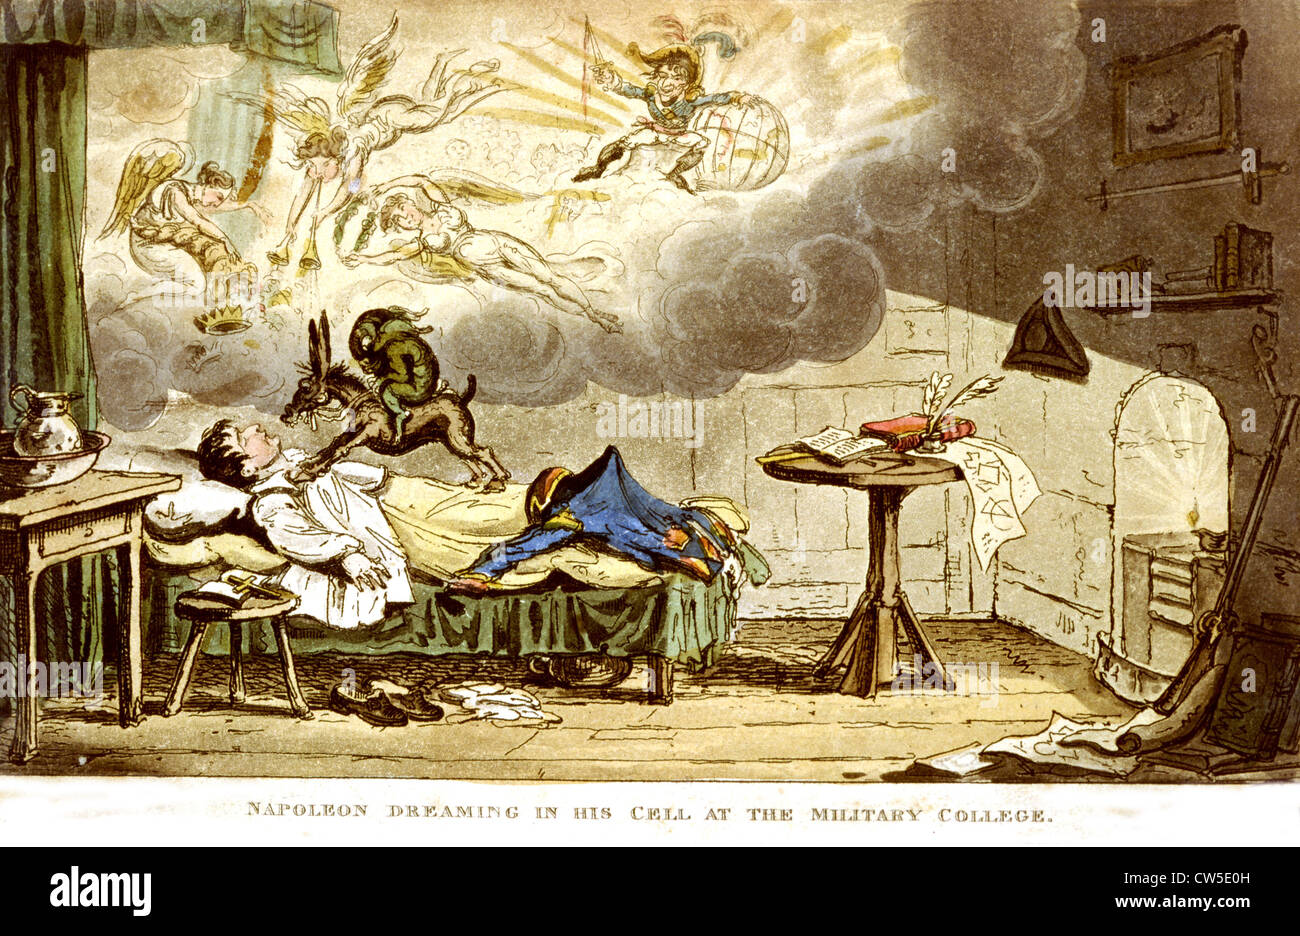 British satirical cartoon. Bonaparte dreaming in his cell at the Ecole Militaire (French military school) - Stock Image